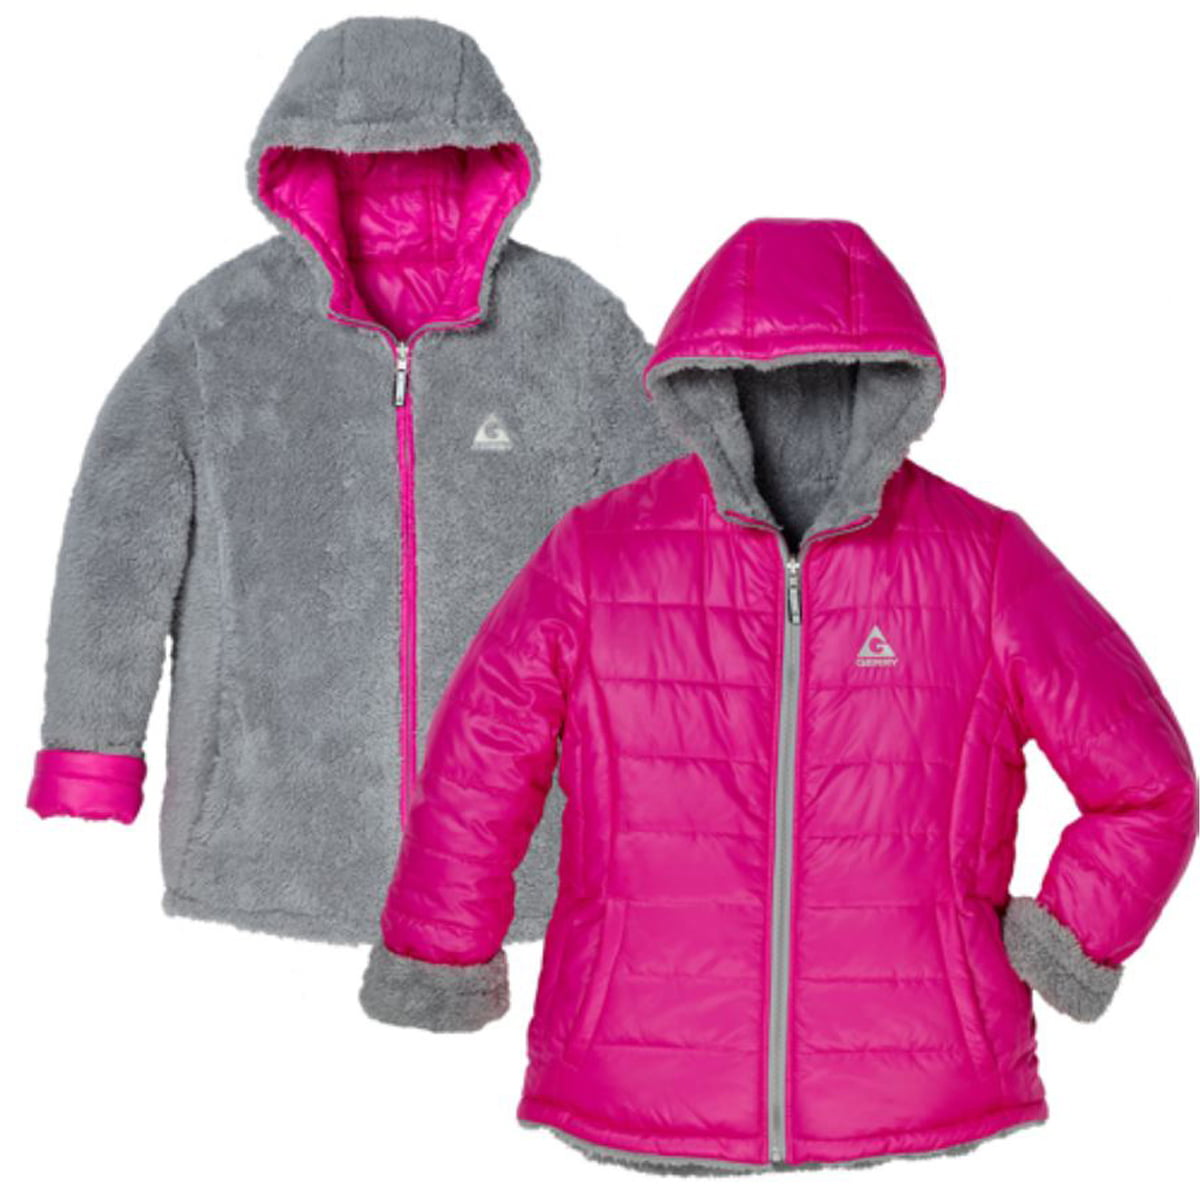 GIRLS GERRY DOWN SWEATER JACKET HOODED DOWN COAT